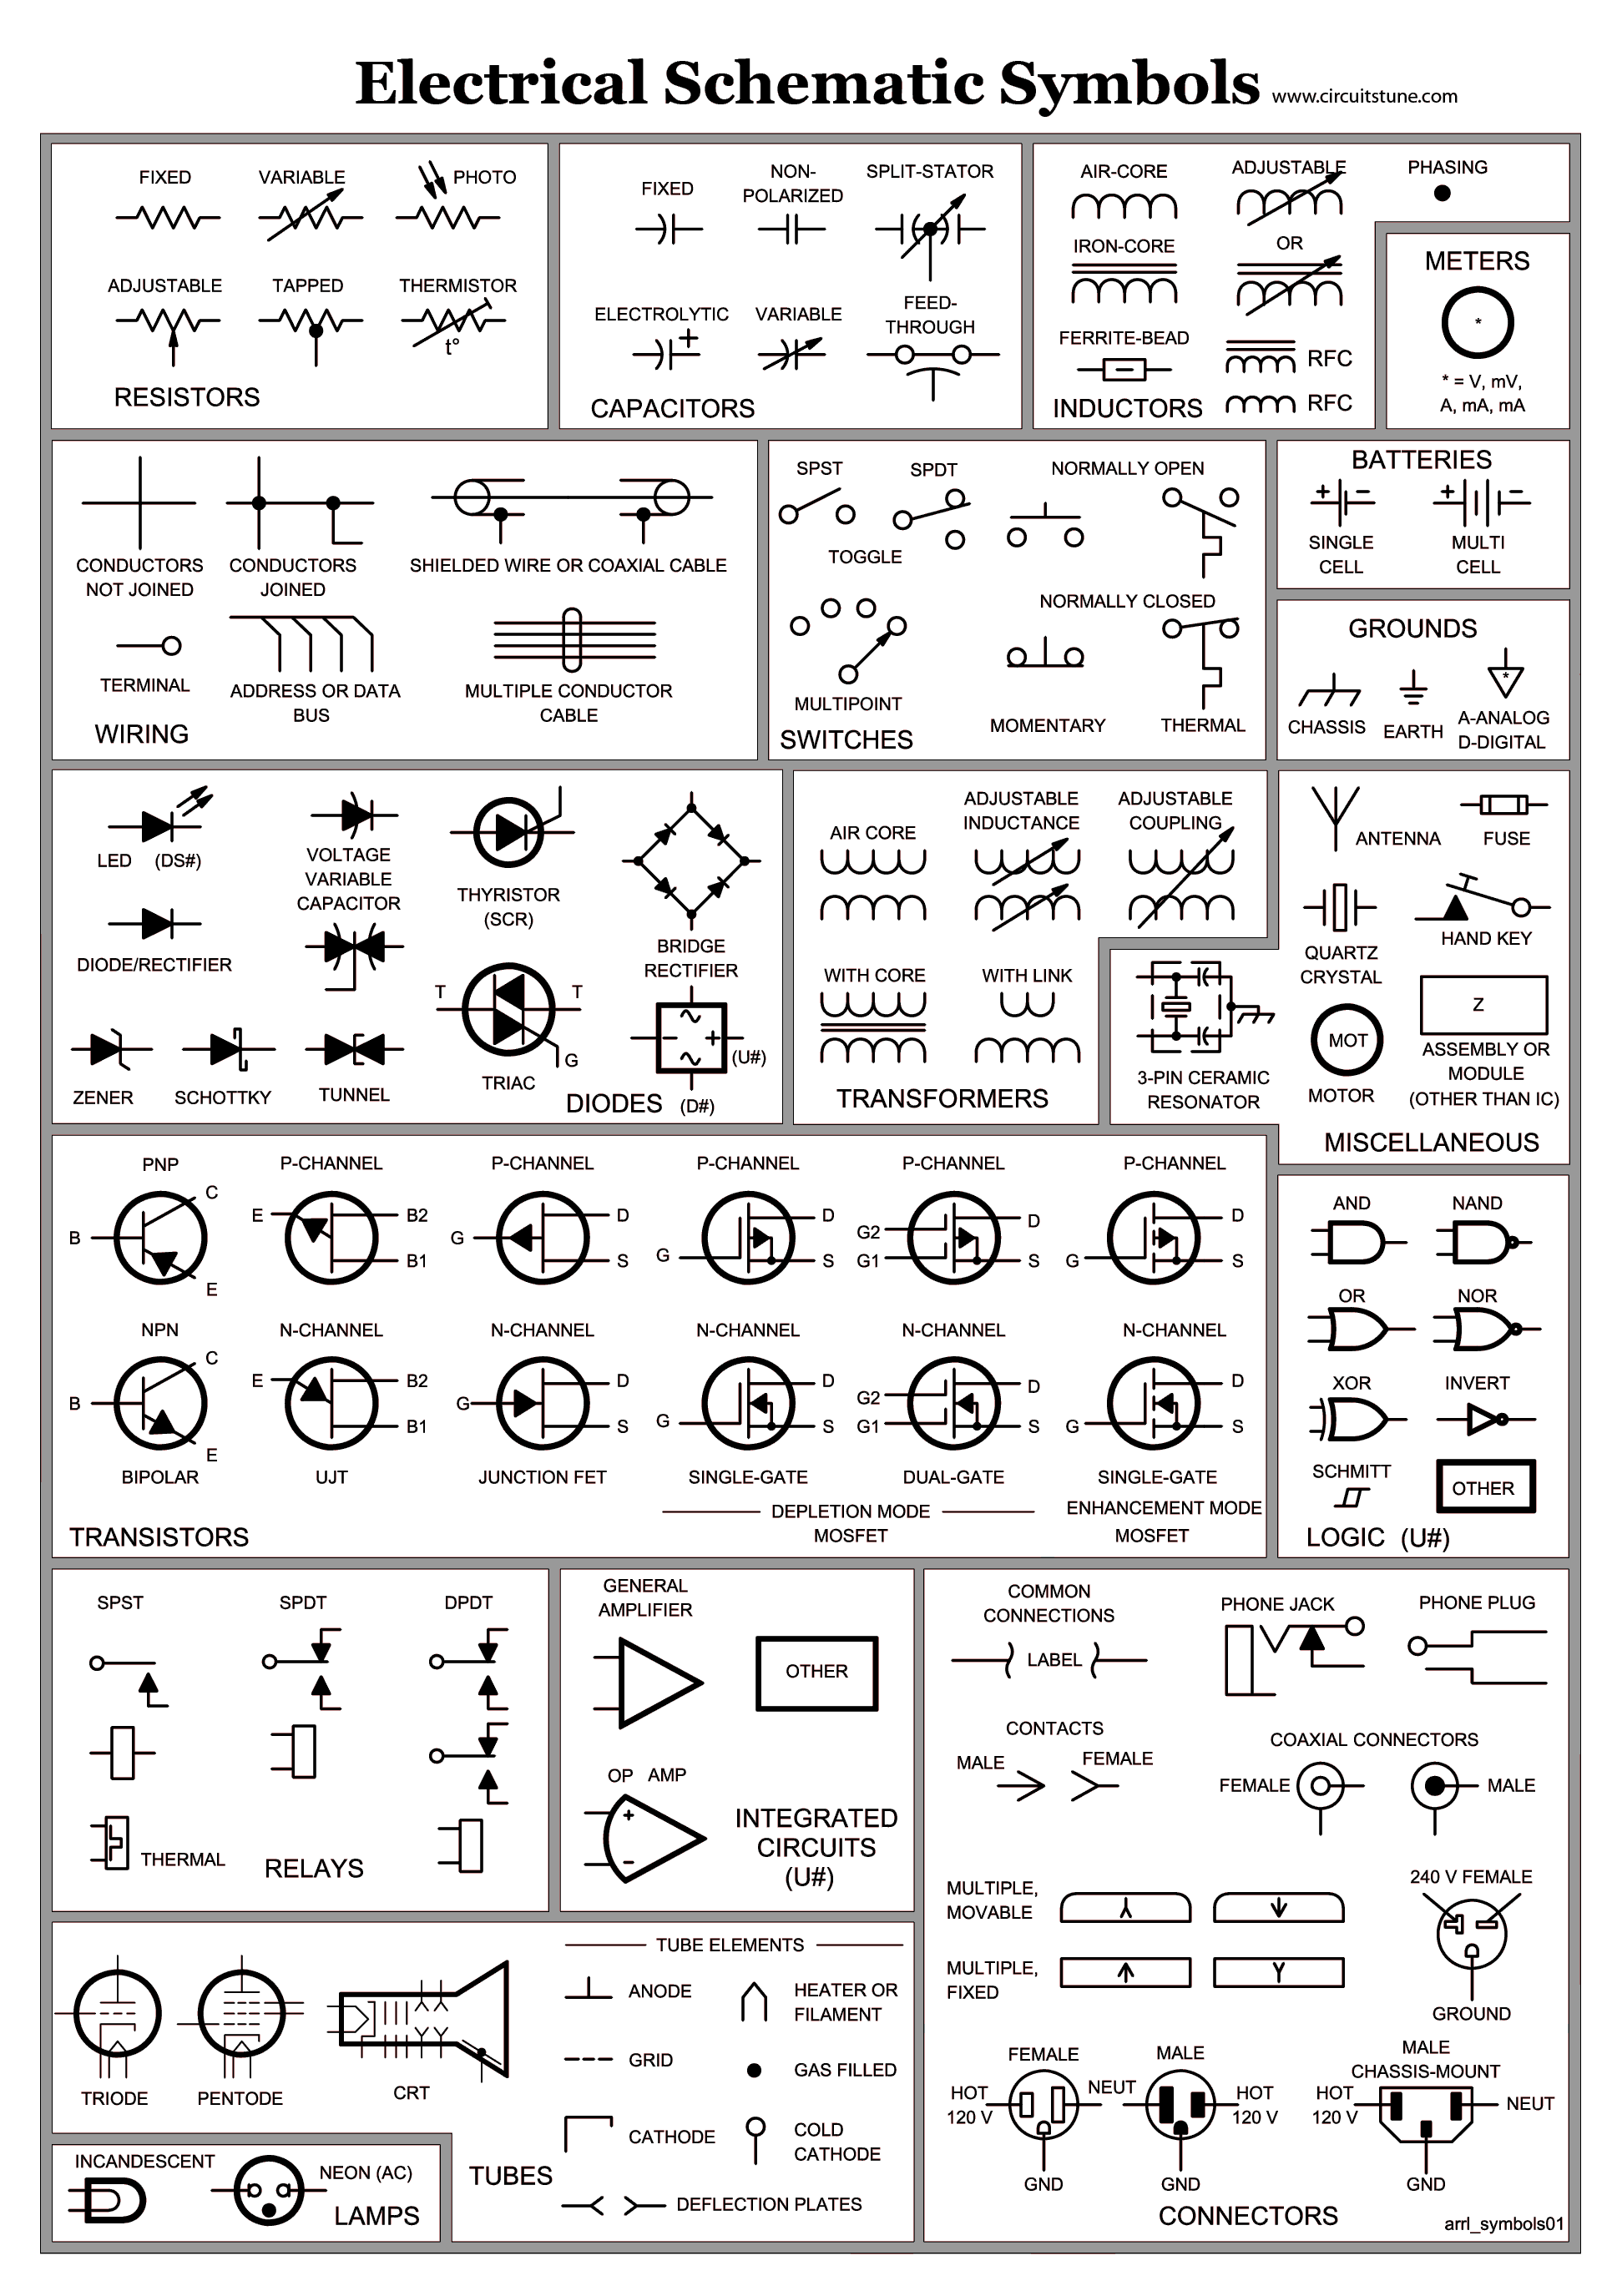 Ac Socket Schematic Symbol Electrical Wiring Diagram Heater Circuit Symbols Diagrams Scematic Rh 33 Jessicadonath De